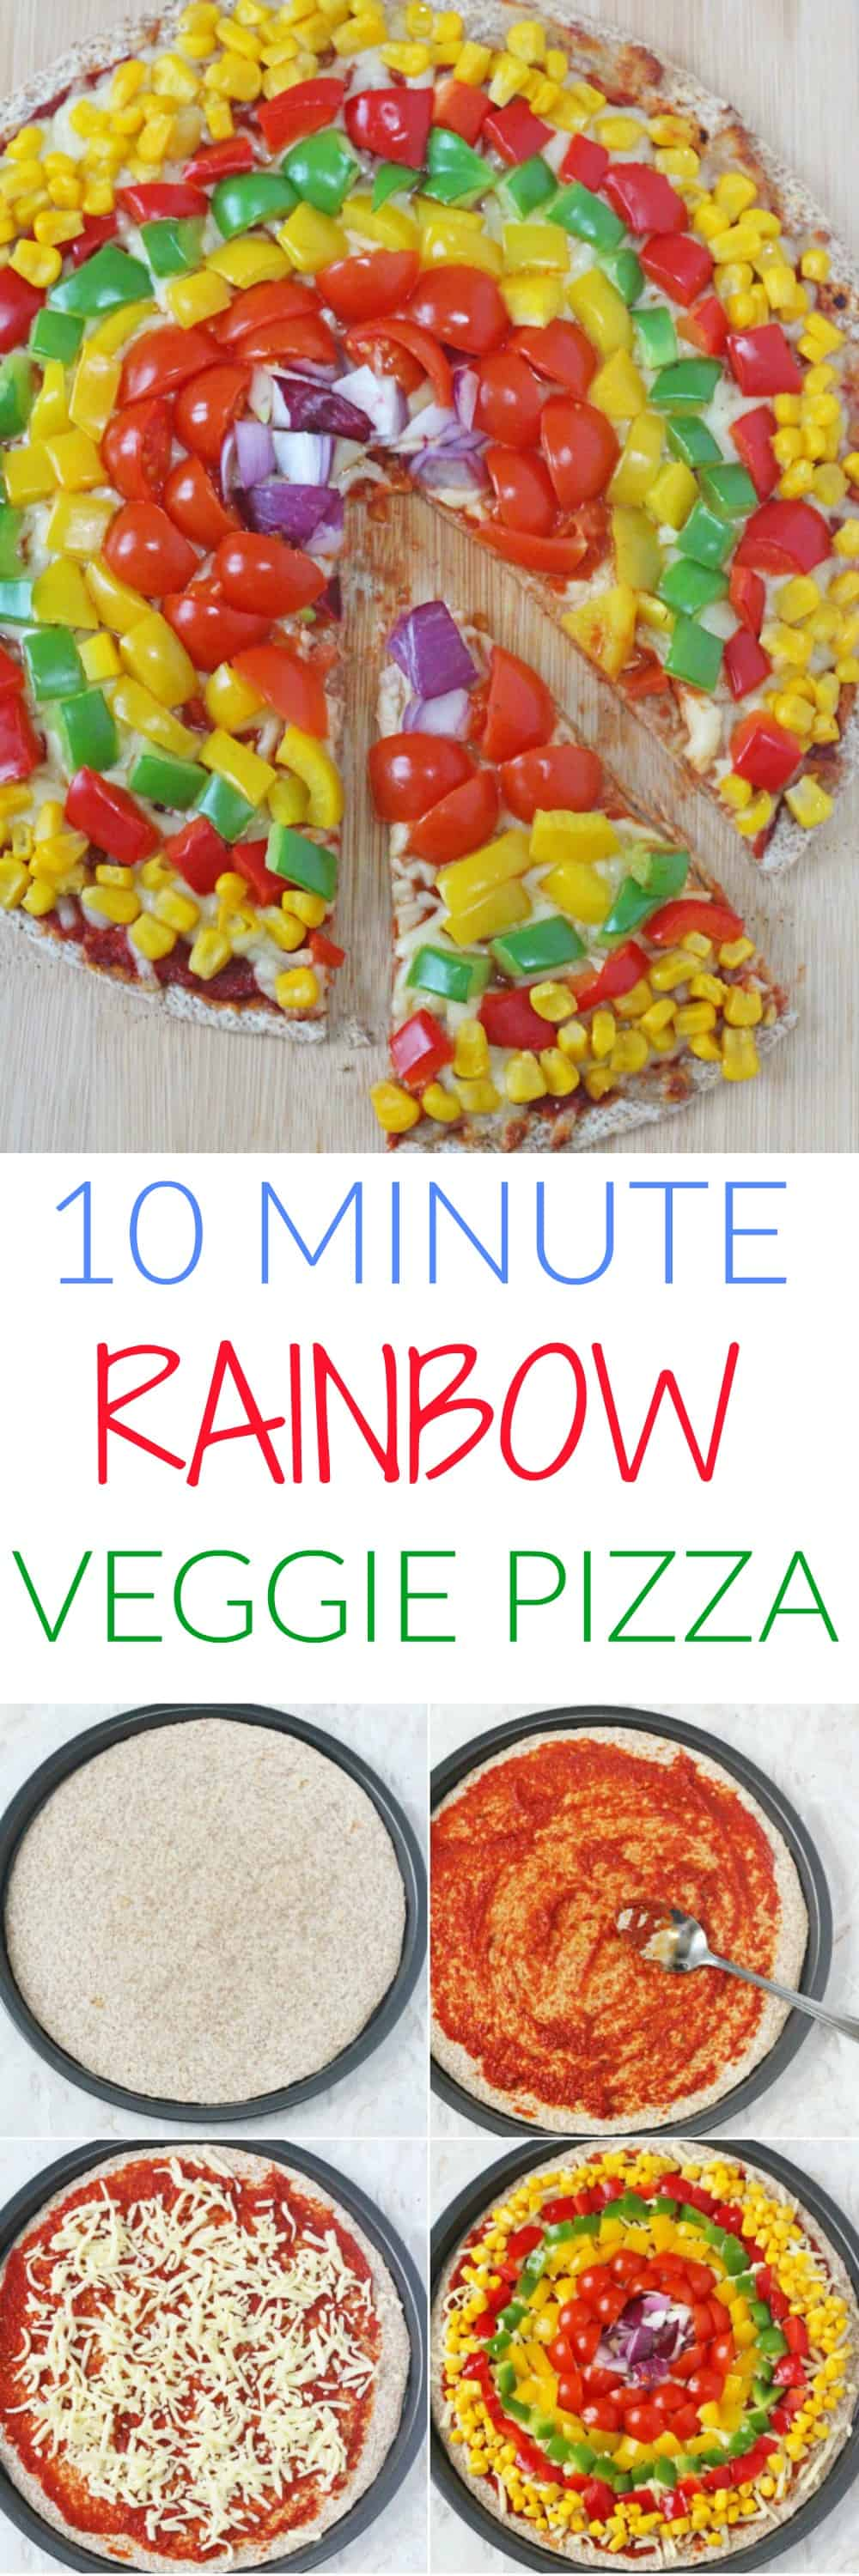 Quick and easy Rainbow Vegetable Tortilla Pizza. Ready in just 10 minutes they're a great healthy alternative to regular pizza that kids will love!